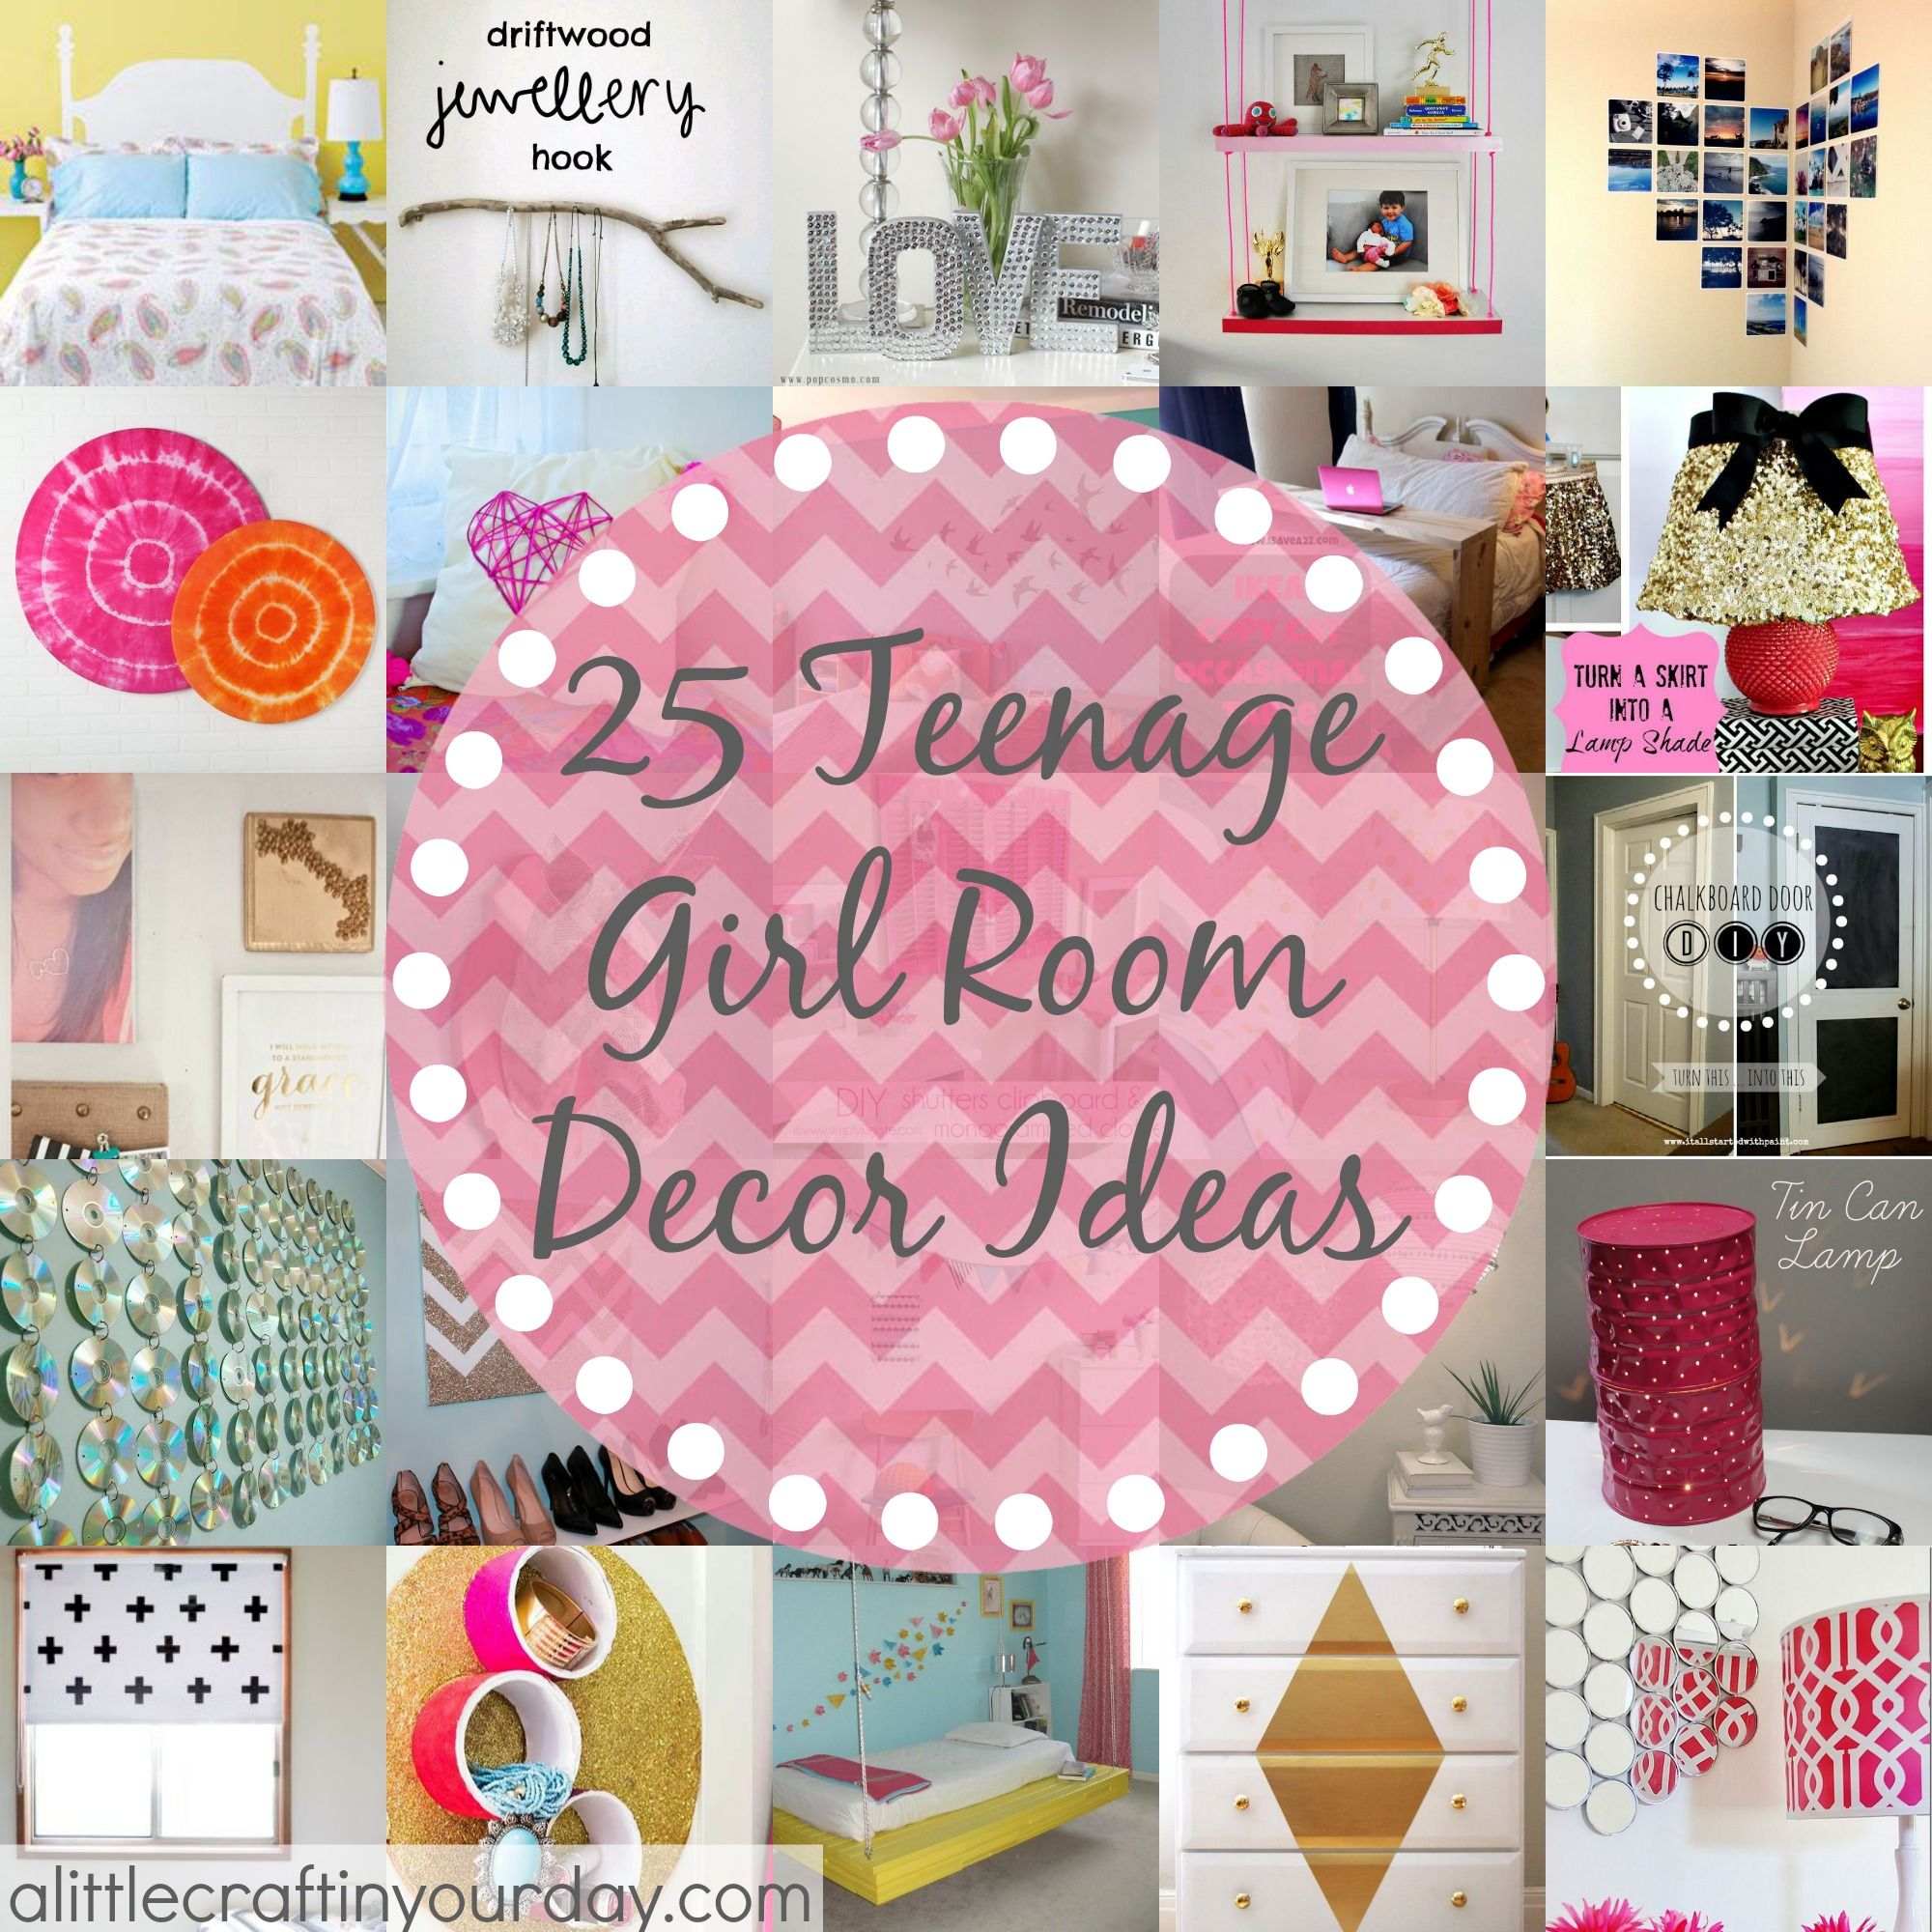 25 more teenage girl room decor ideas - Diy Room Decor For Teens